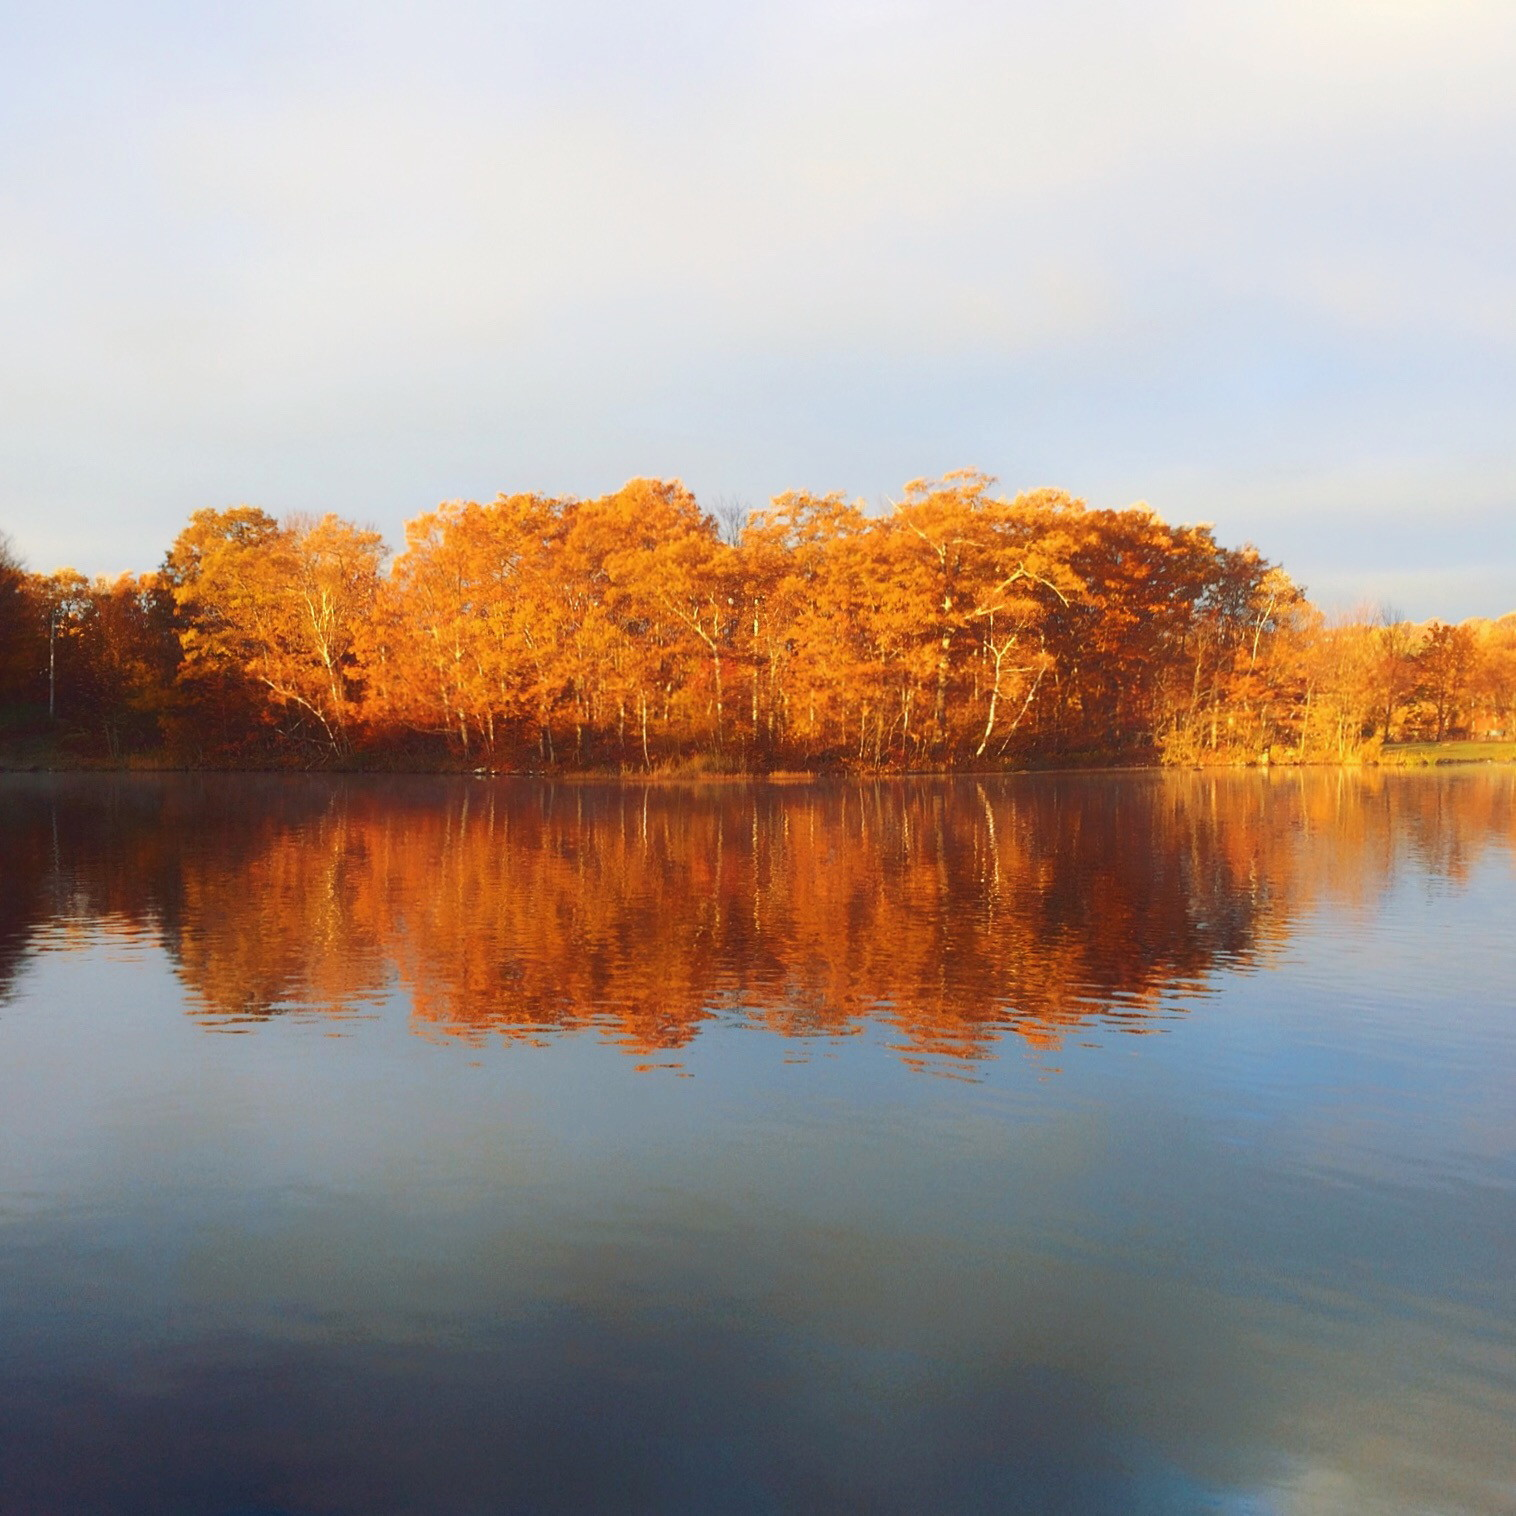 Autumn trees reflected in a lake. Photo by Reghan Skerry.